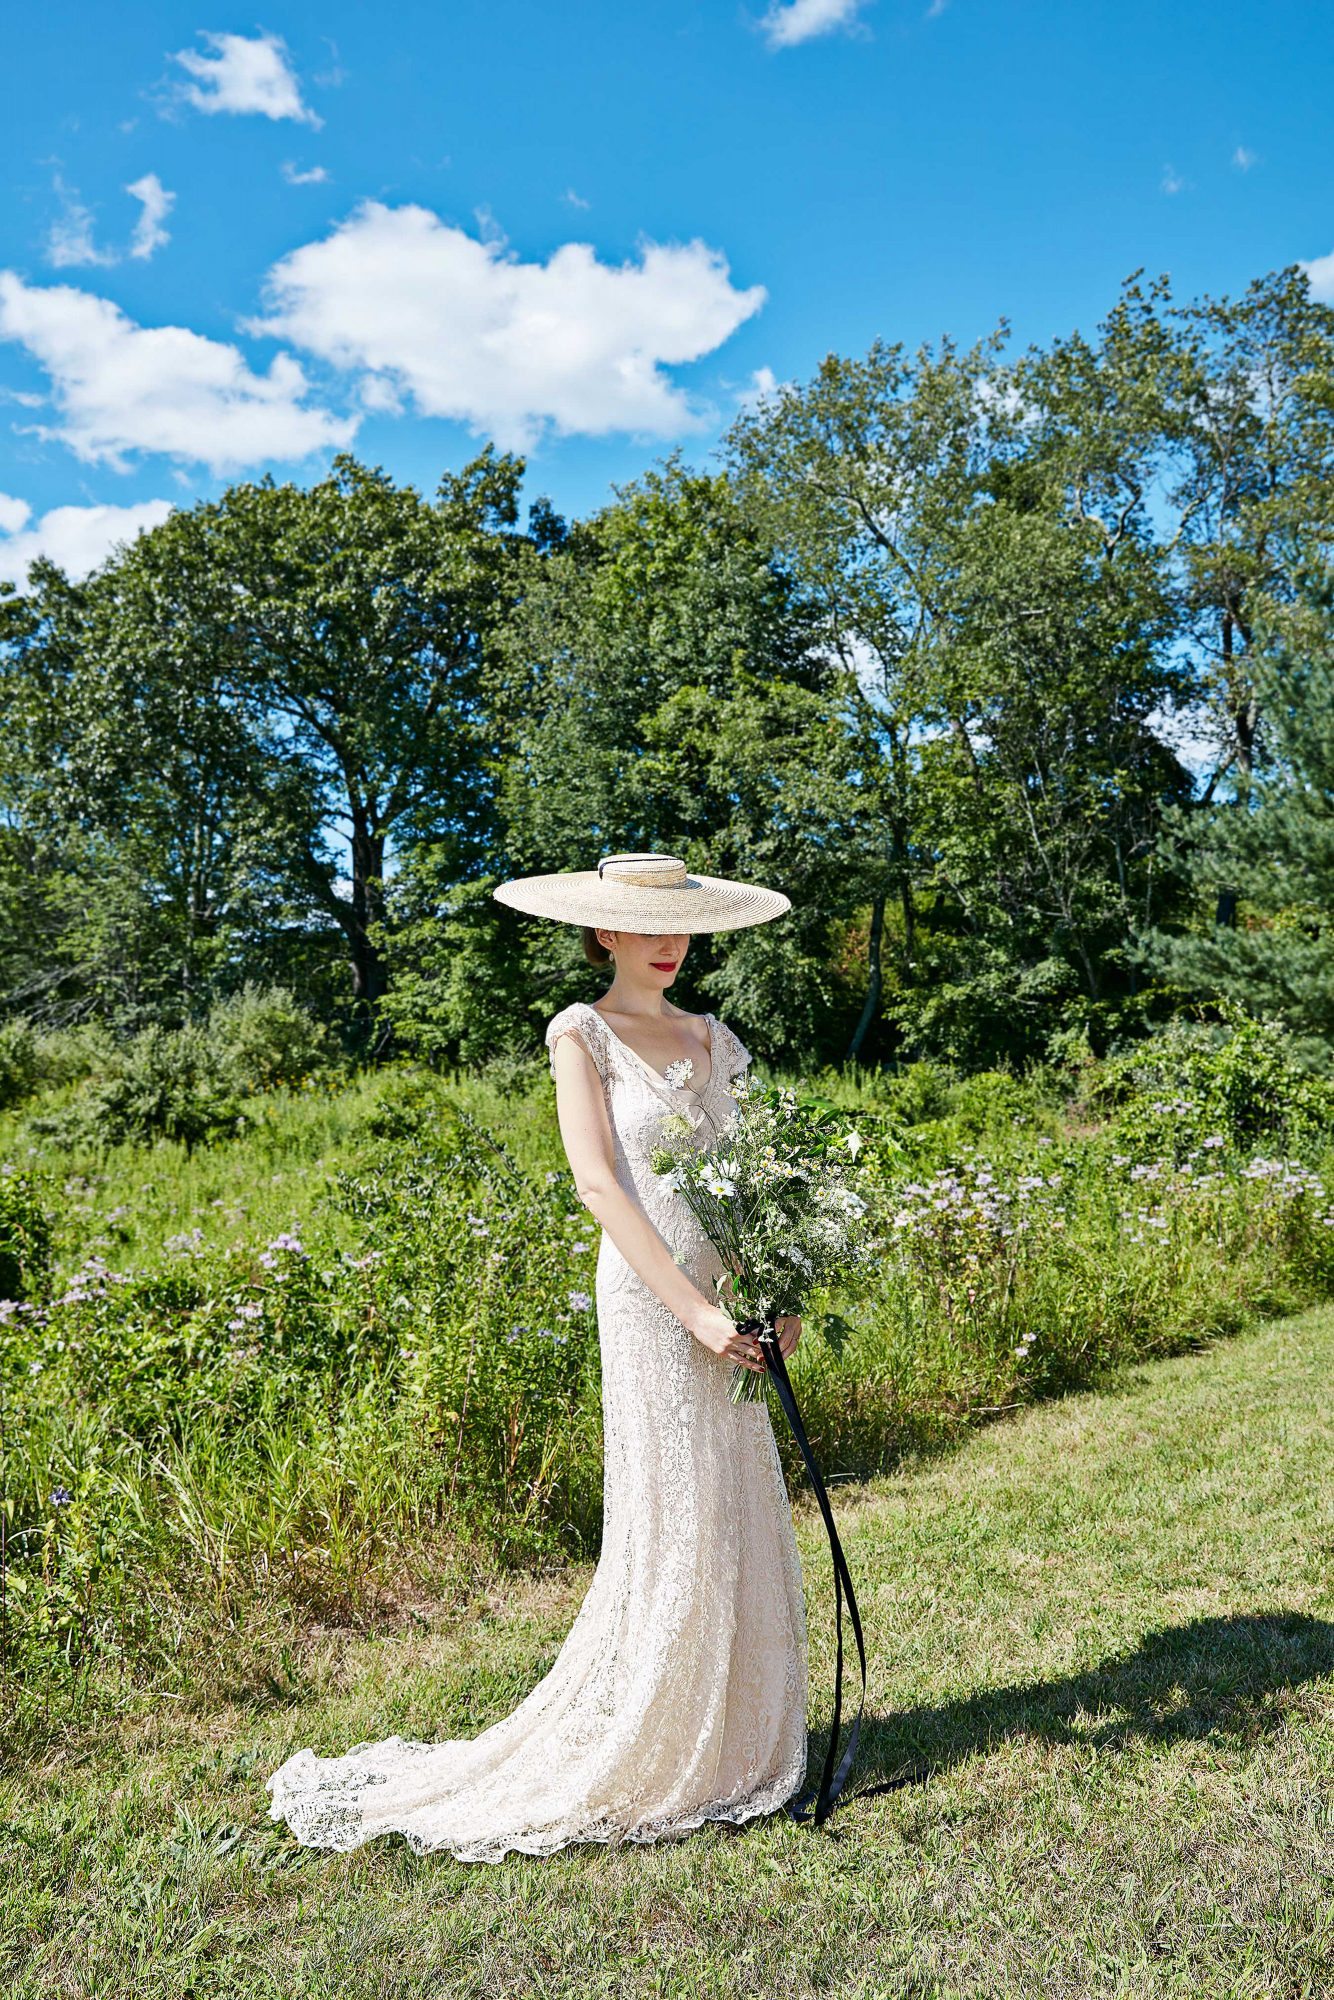 avril quy wedding new york bride hat outdoors